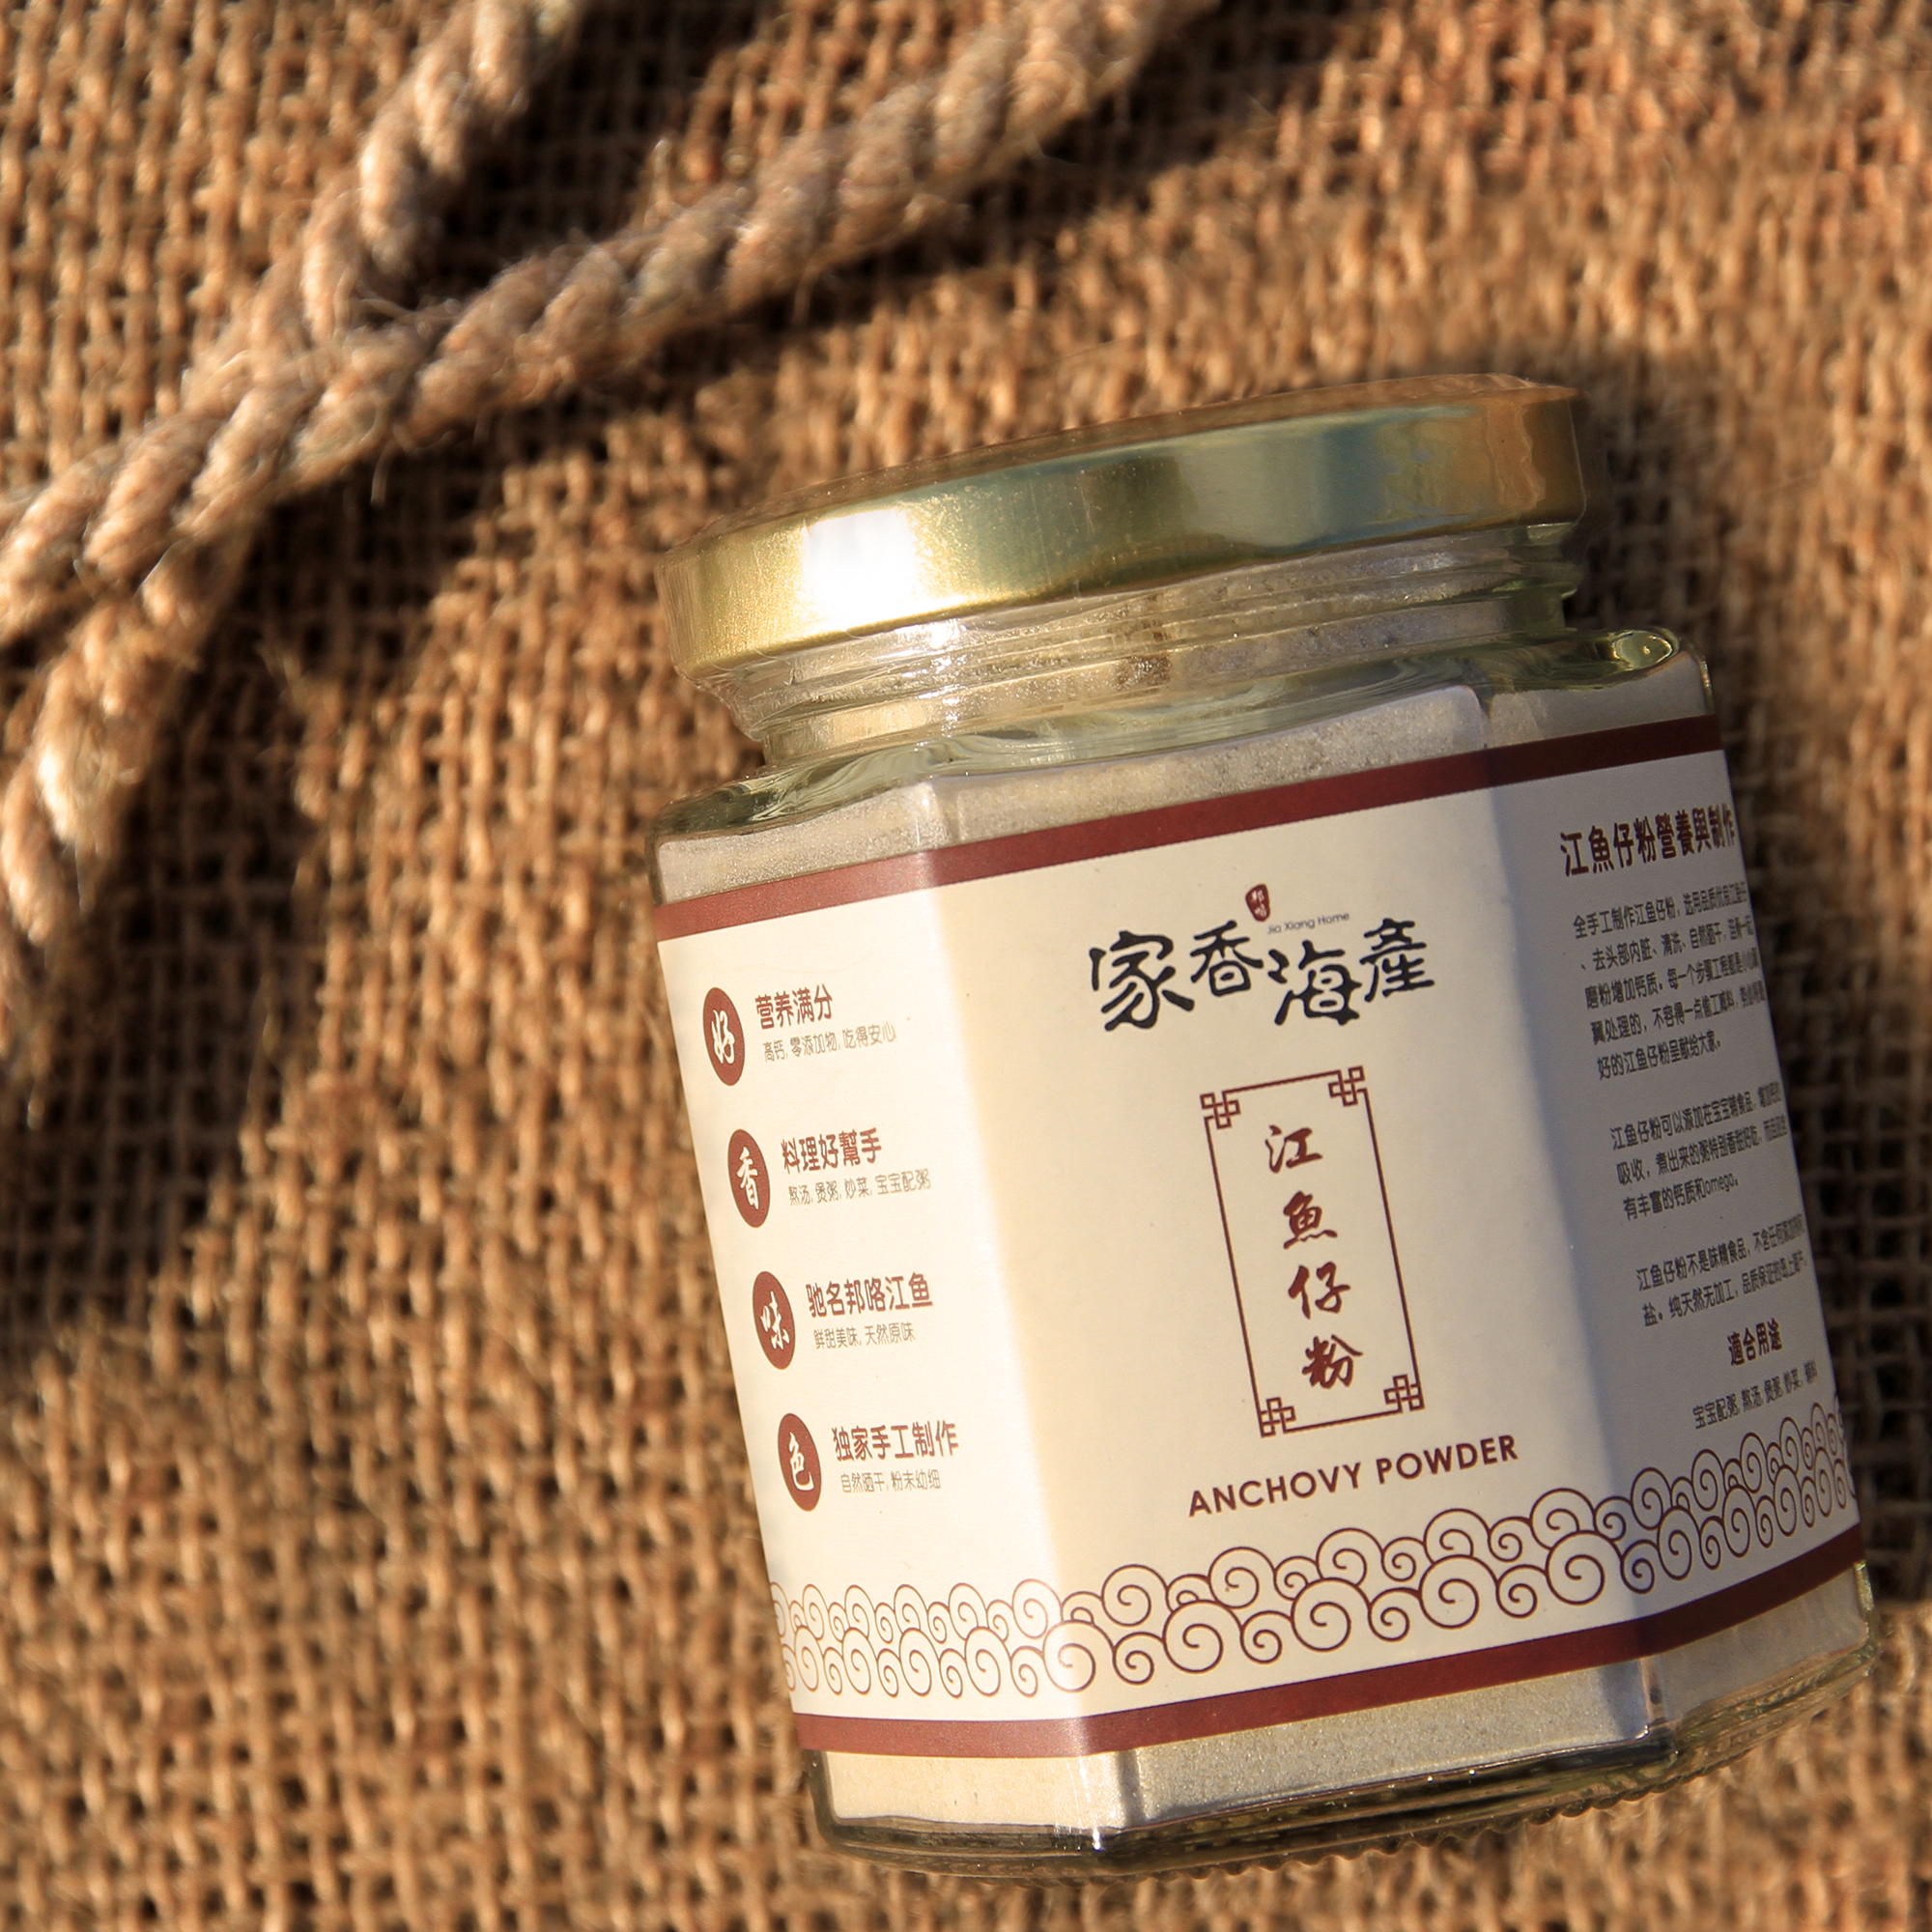 Jia Xiang 家香 | 精选产品 Featured Products - 调味粉系列 Food Powder Series